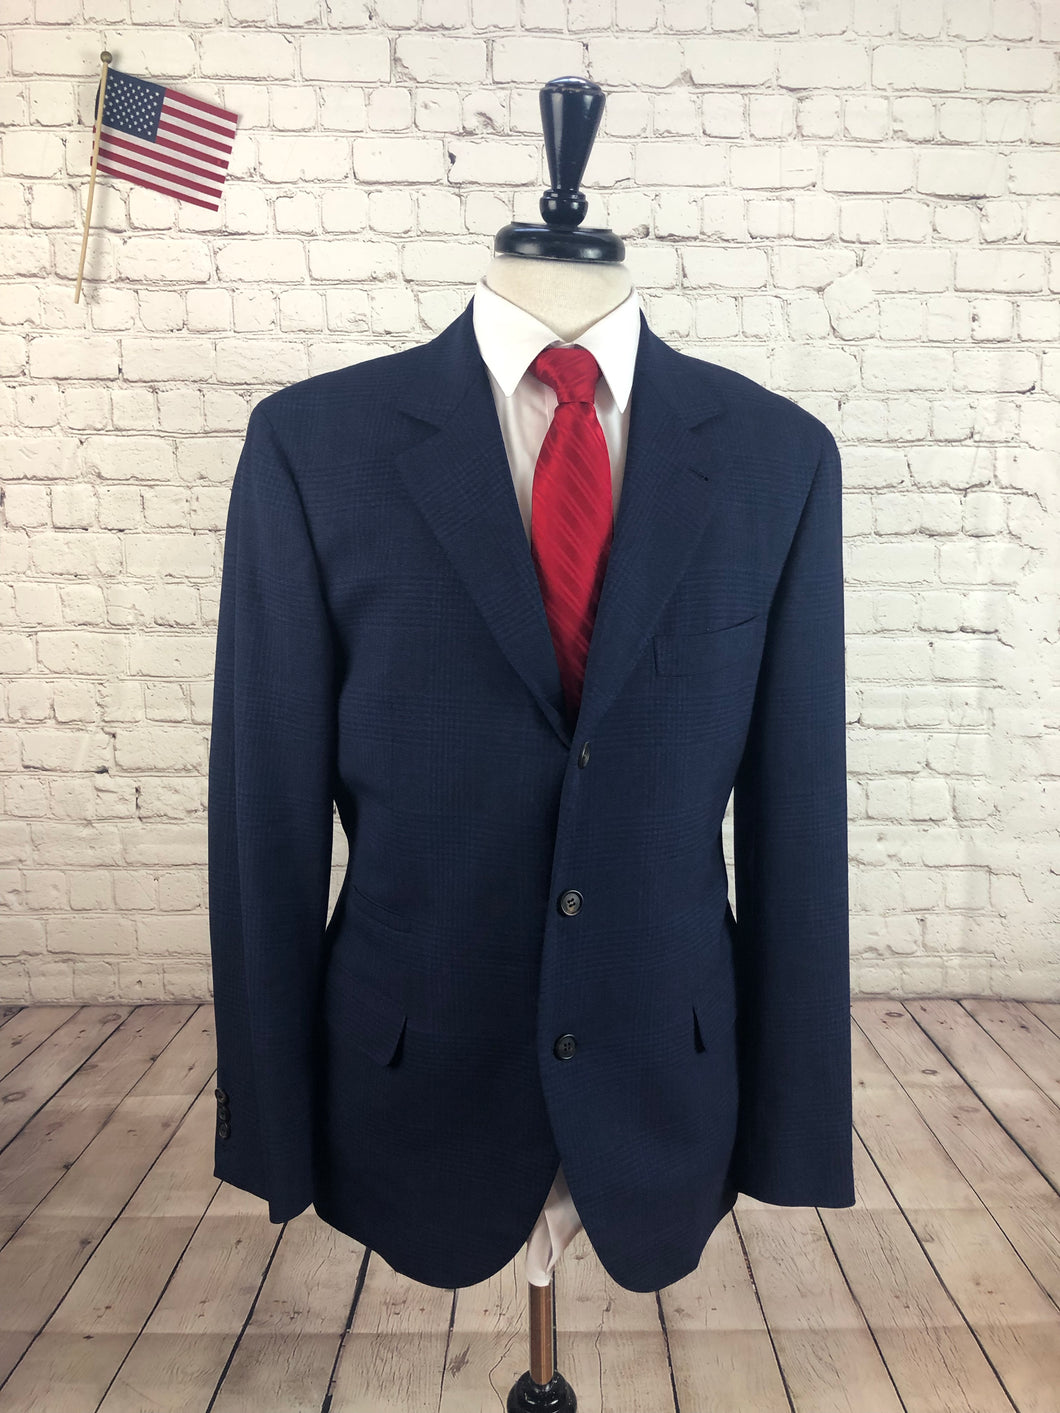 Bruno Cucinelli Men's Navy Plaid Wool Suit 42R 34x32 - SUIT CHARITY OUTLET